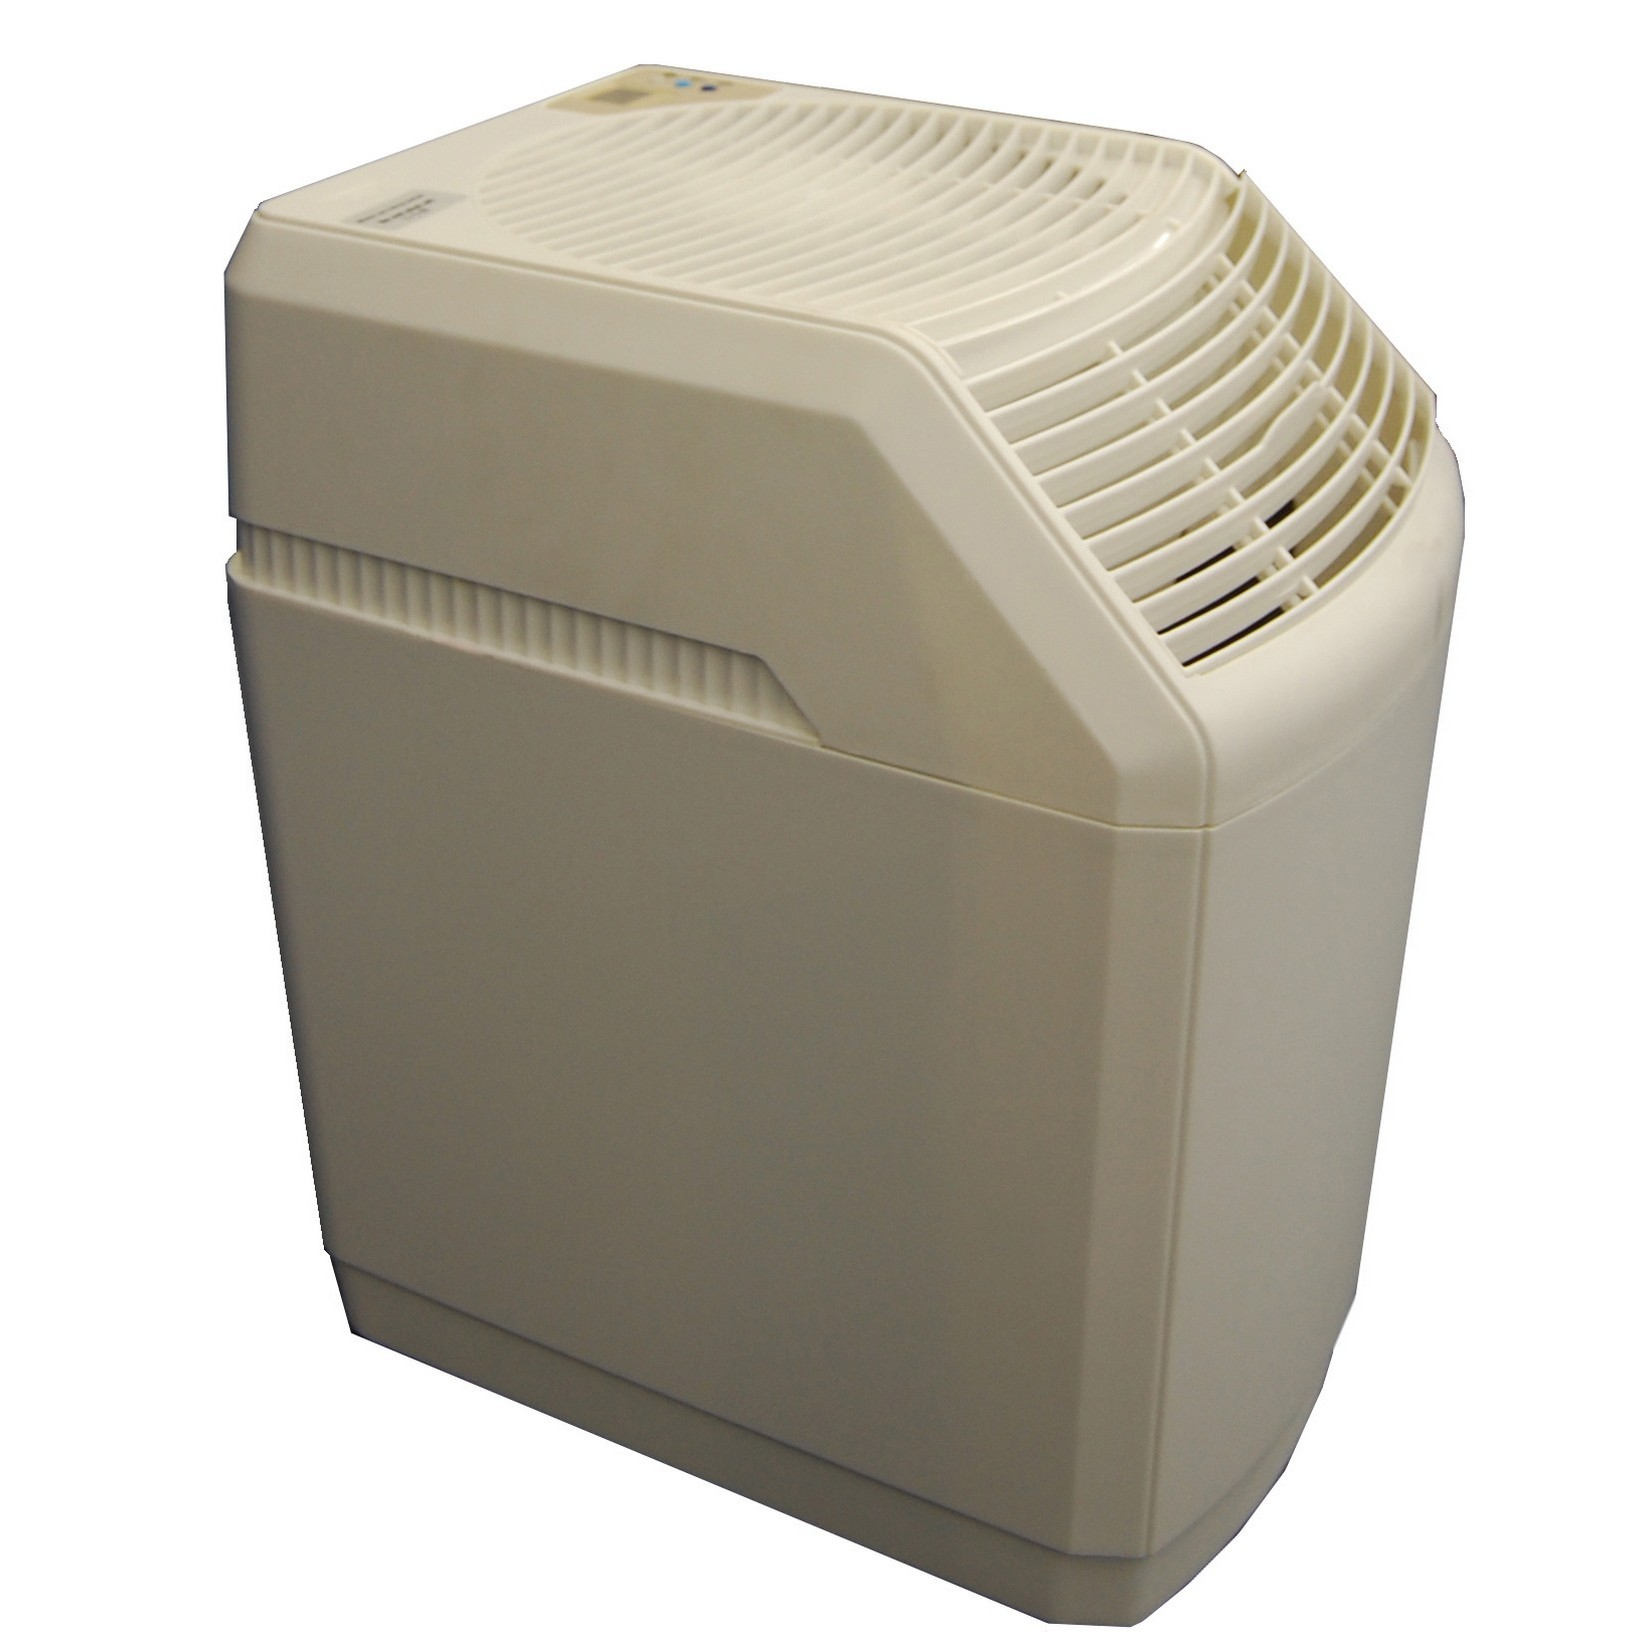 whole house humidifier essick air 821 000 whole house evaporative #7C714F